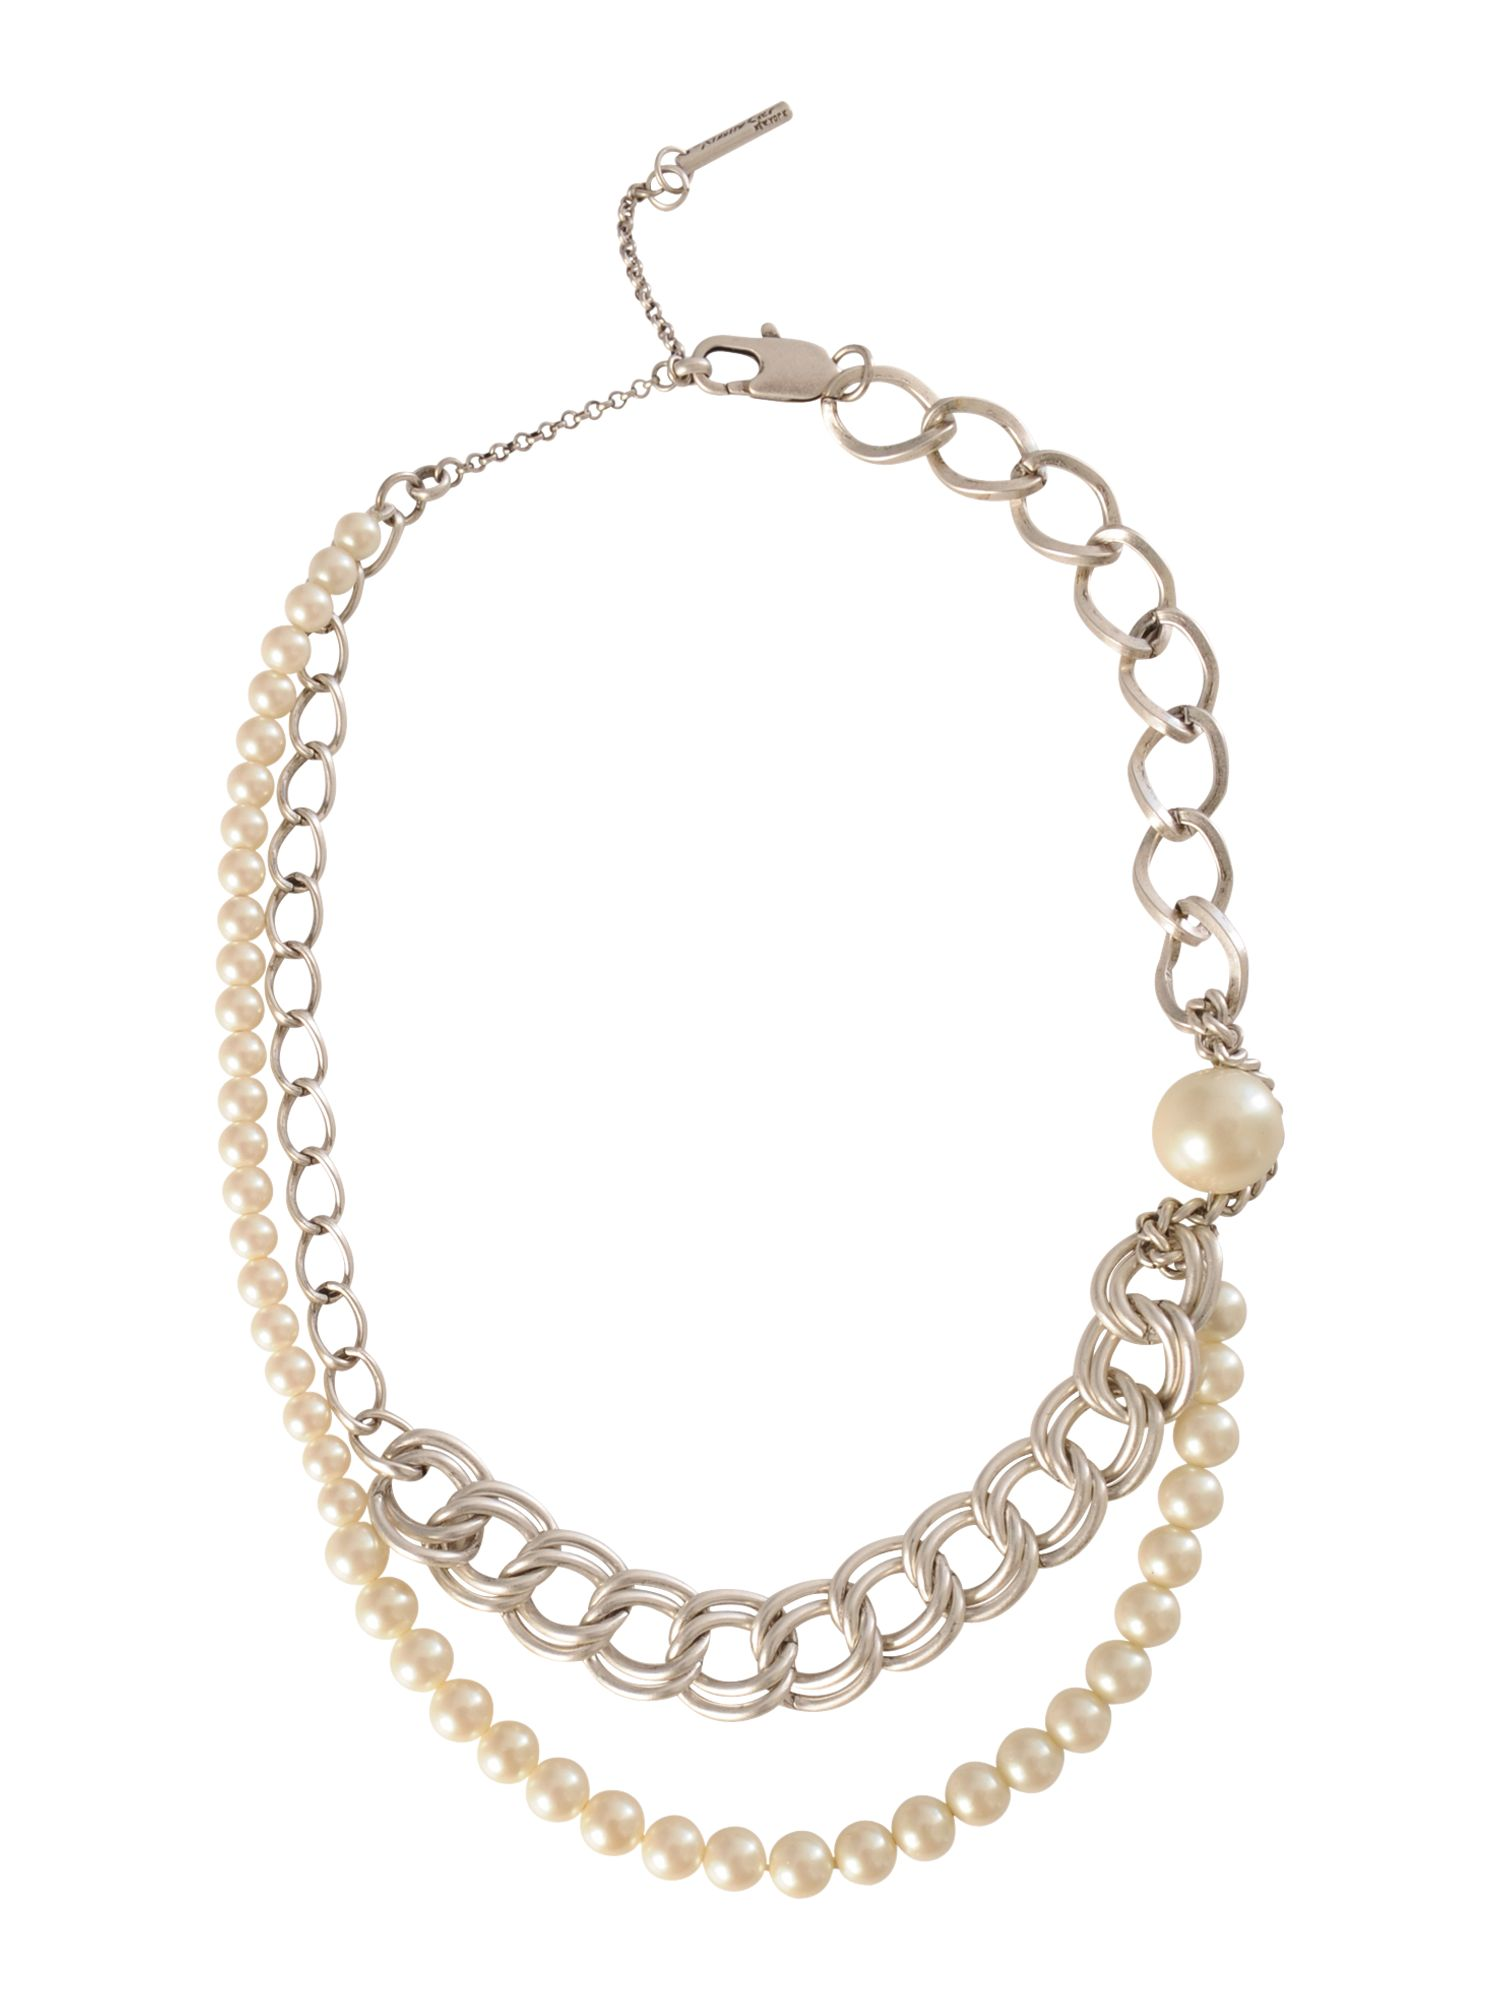 Kenneth Cole Pearl chain necklace